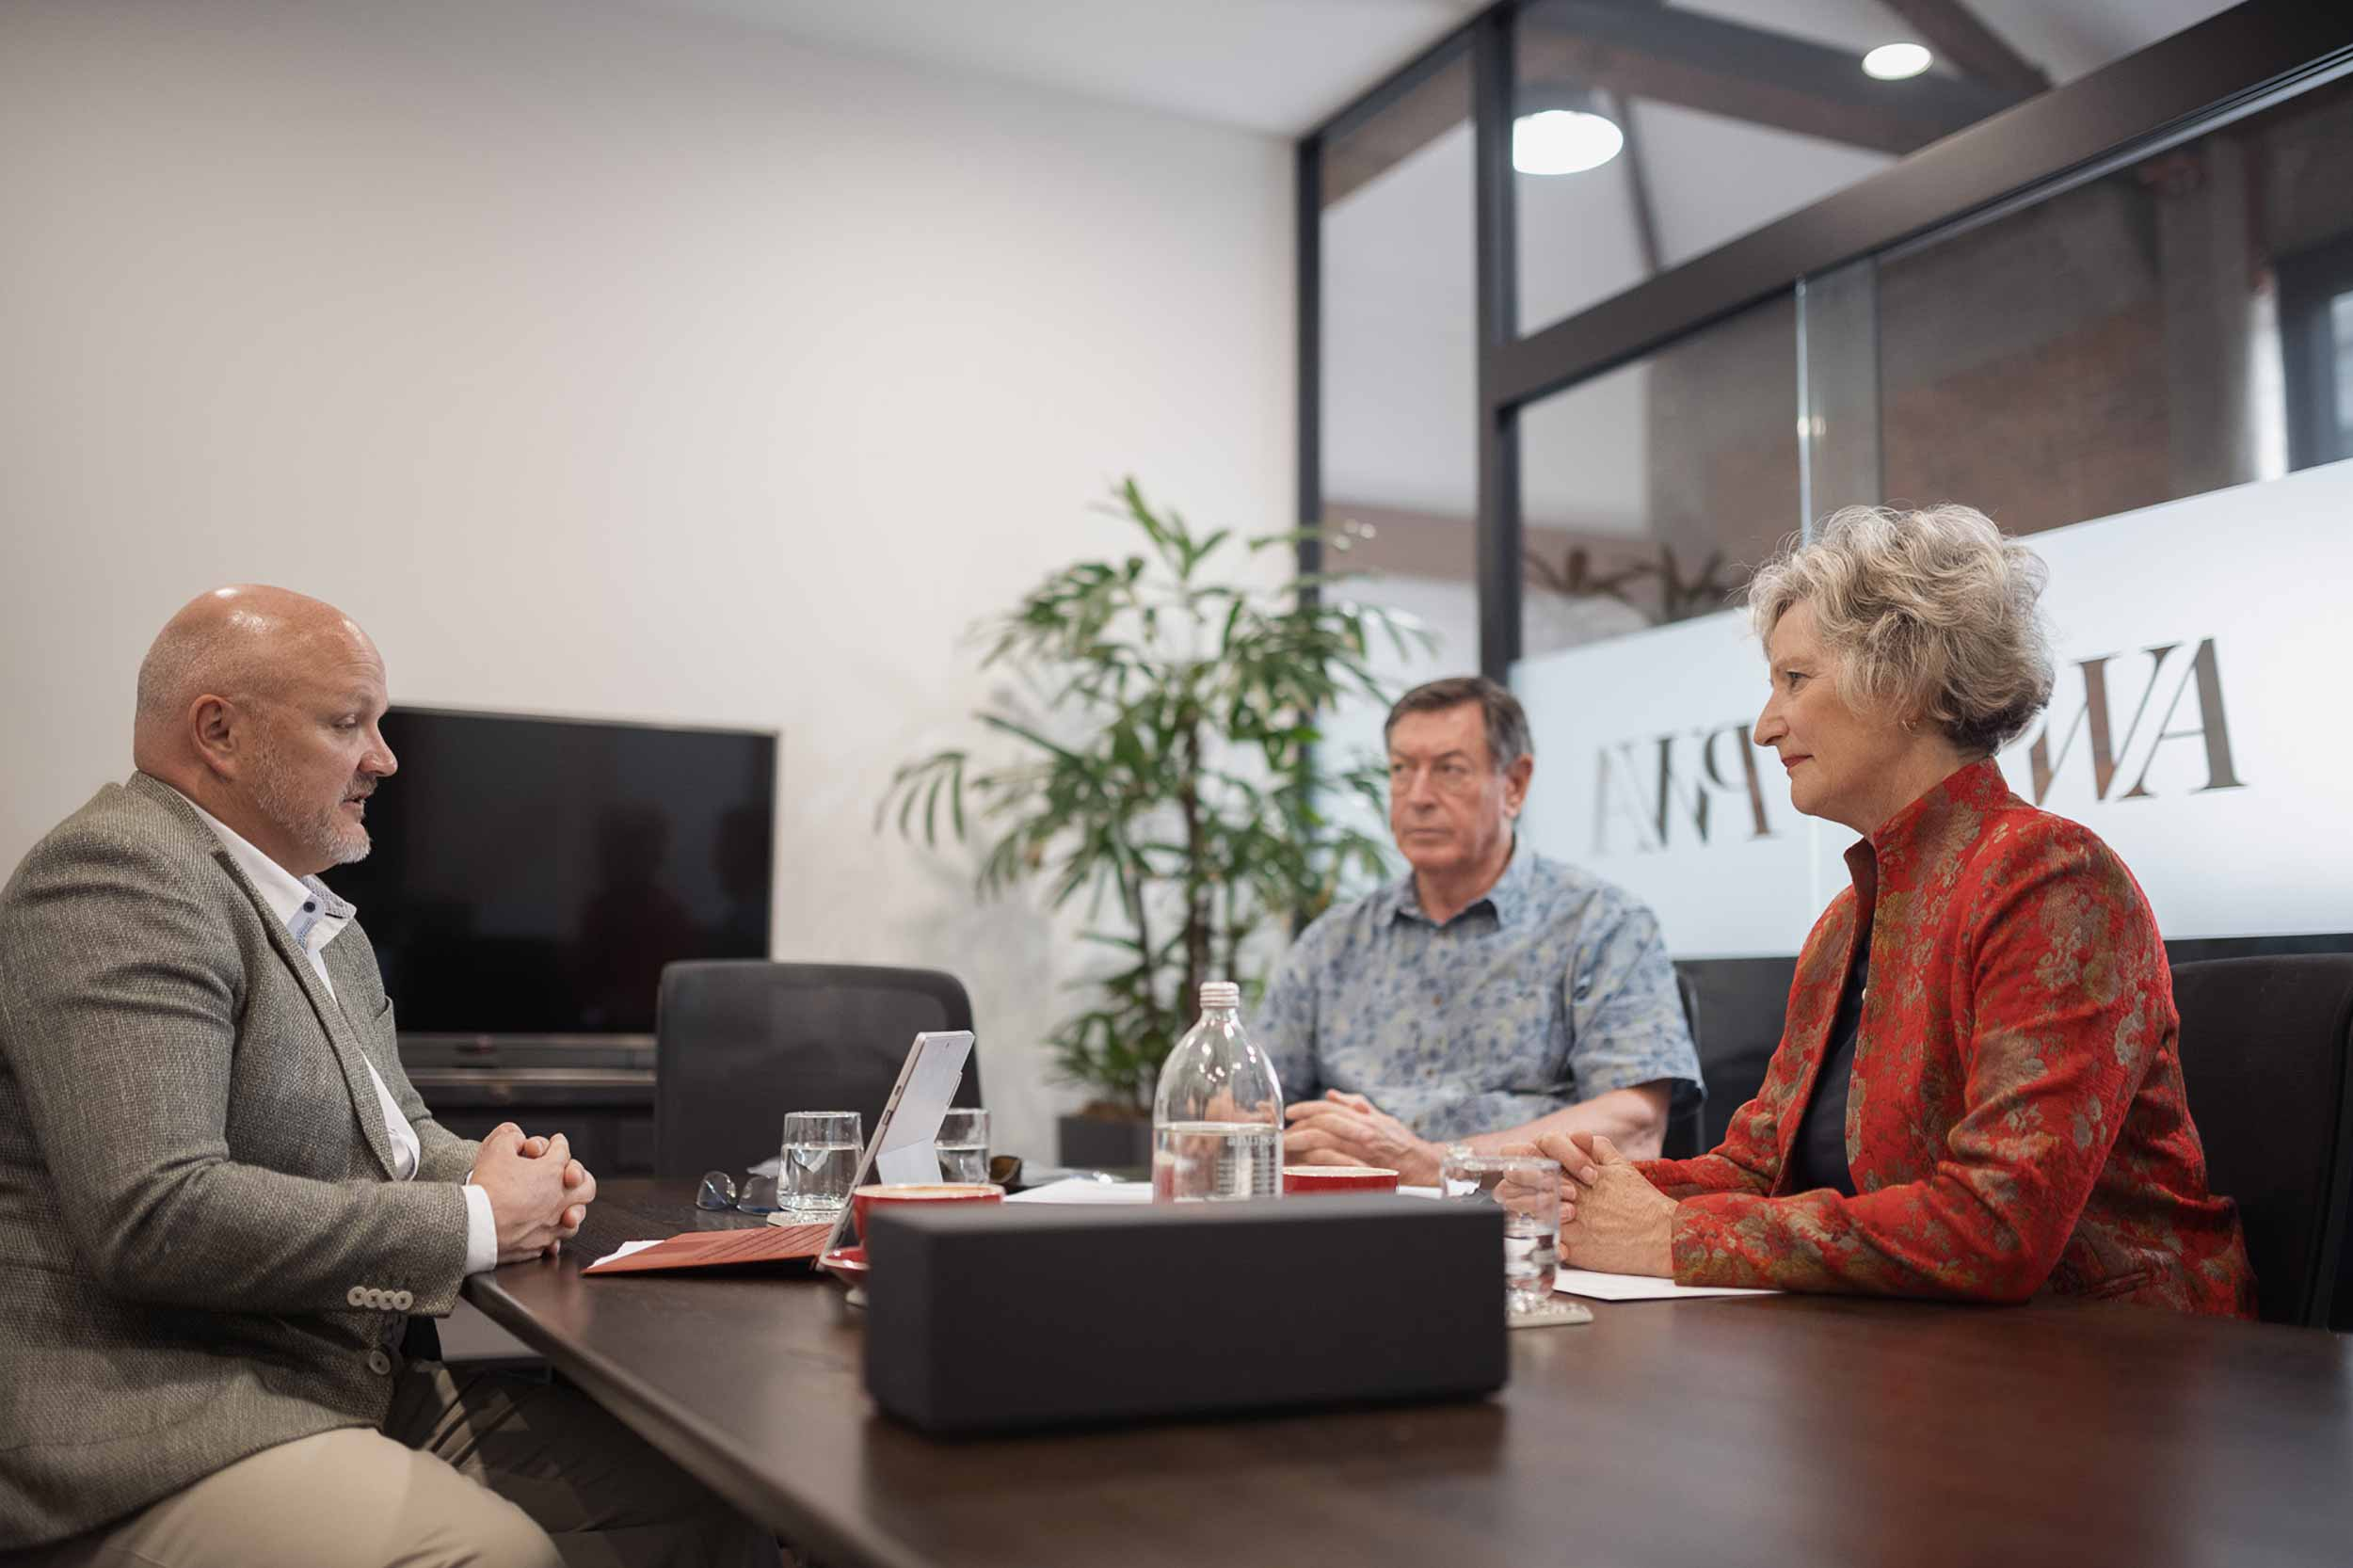 The PWA Family Office brings empathy, transparency and experience to help solve family issues and achieve our client's overall goals.